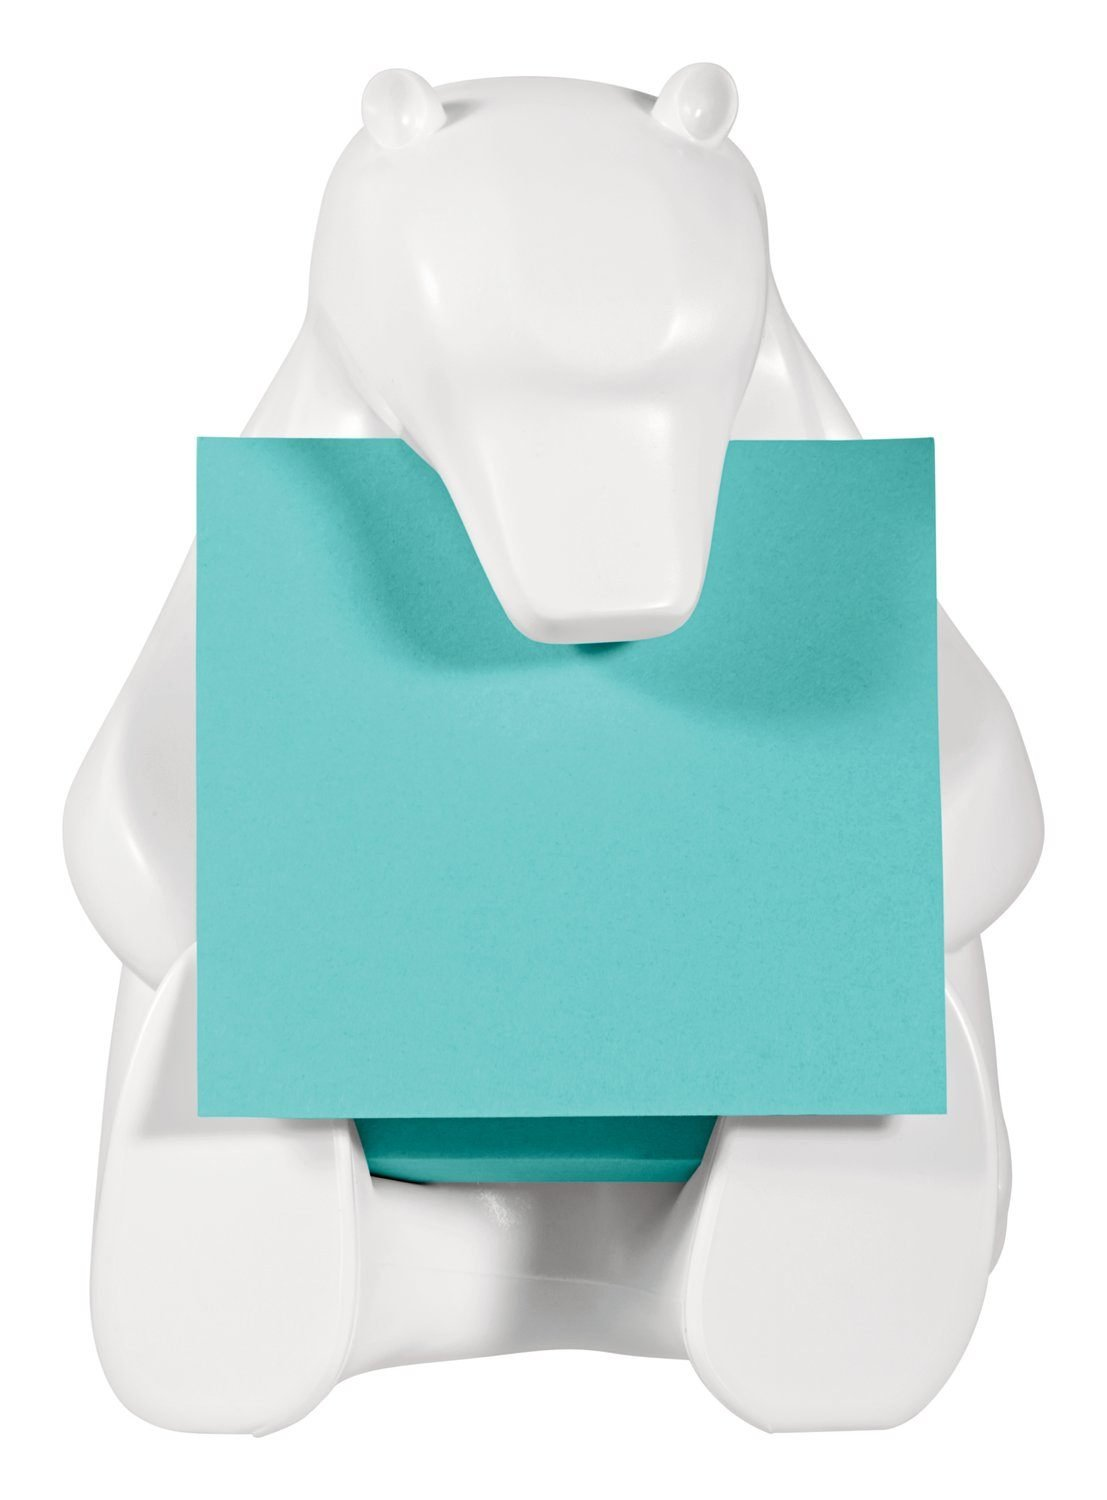 Post-it Notes Dispenser for 3 in. x 3 in. Pop-up Notes, Includes 1 pad of notes, 45 Sheets (BEAR-330) by Post-it